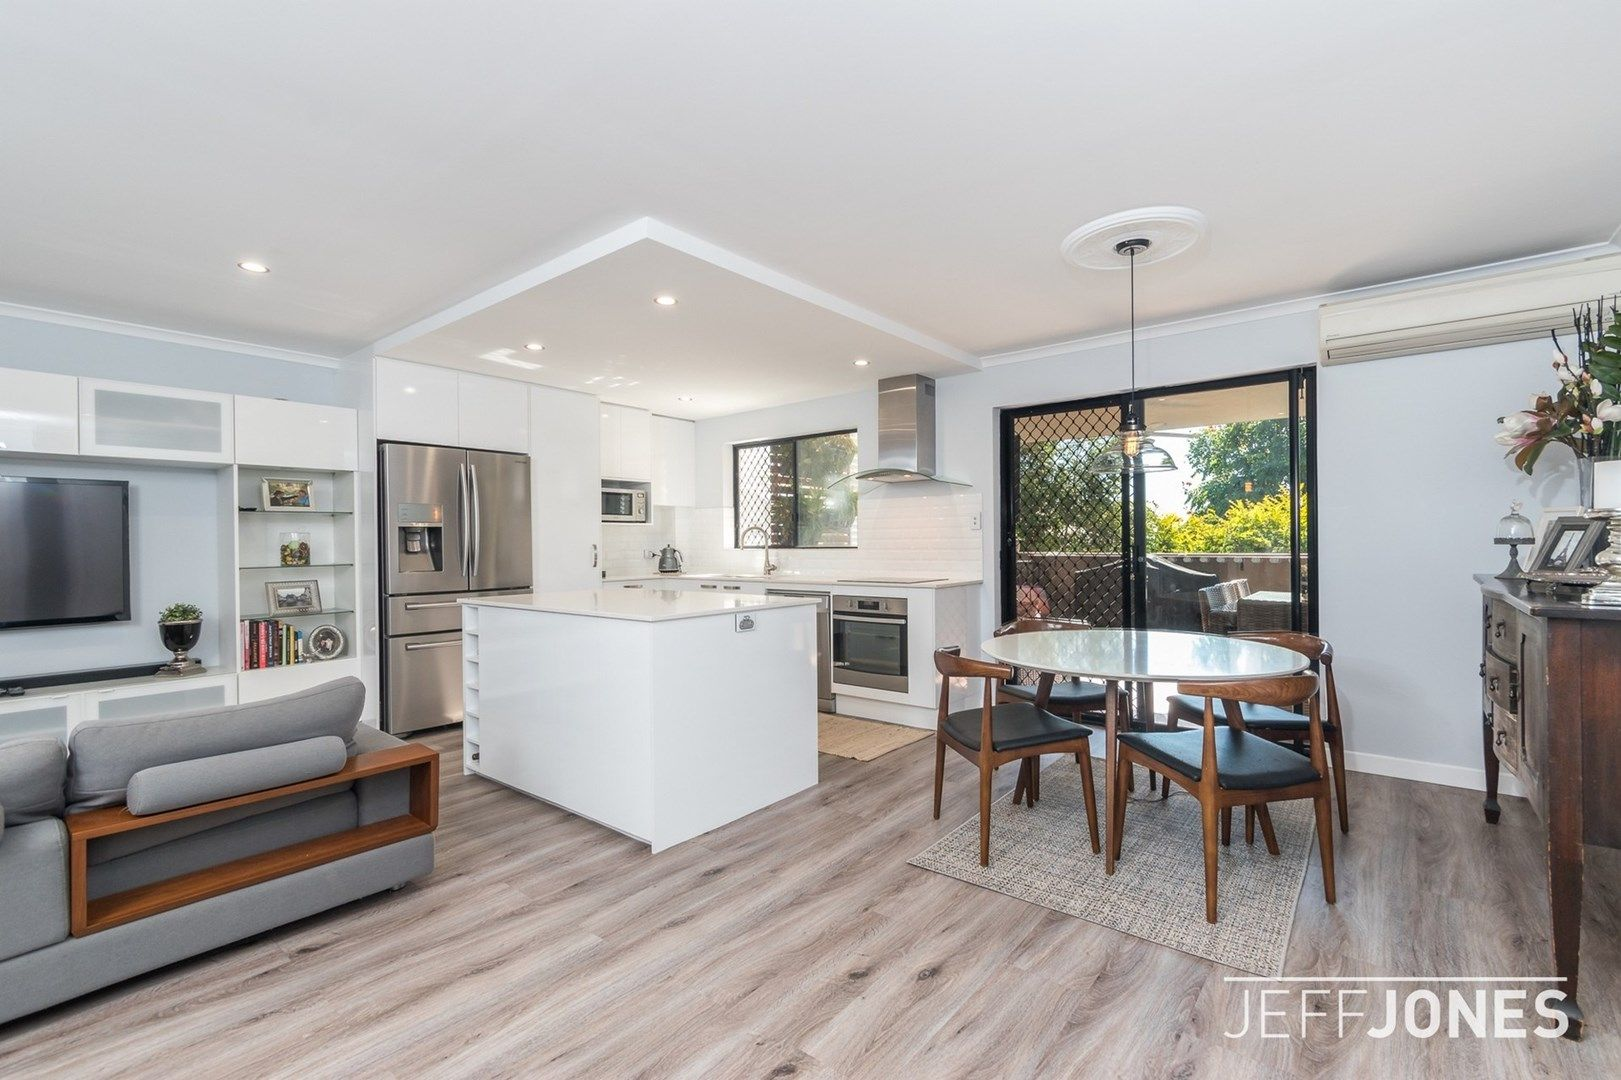 3/192 Juliette Street, Greenslopes QLD 4120, Image 0